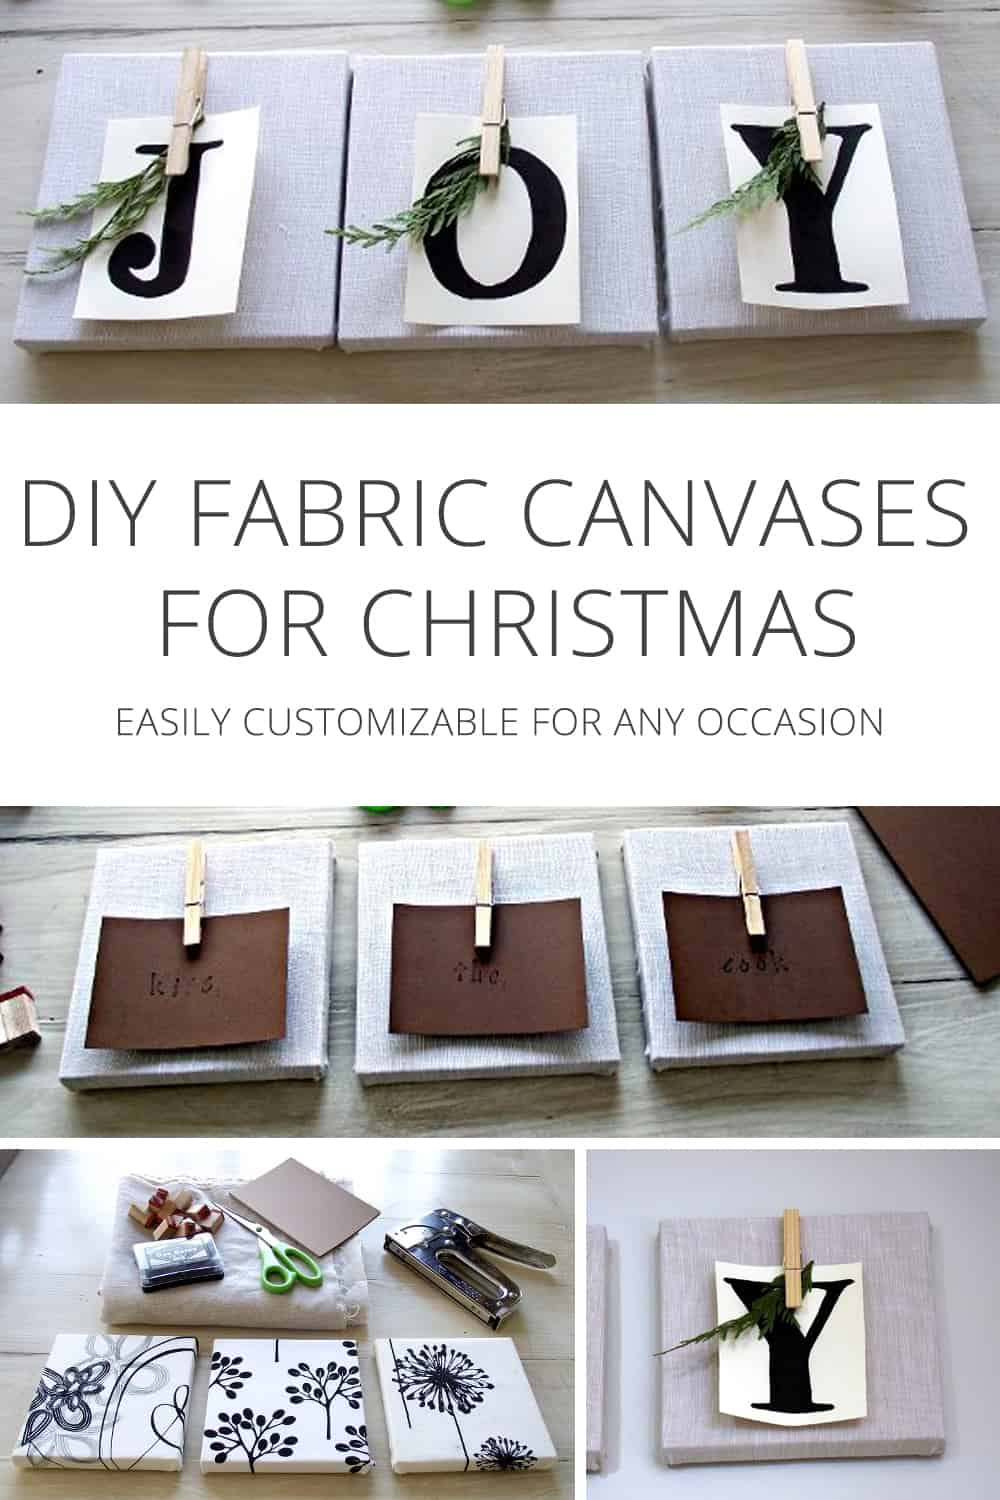 DIY Fabric Canvases for Christmas